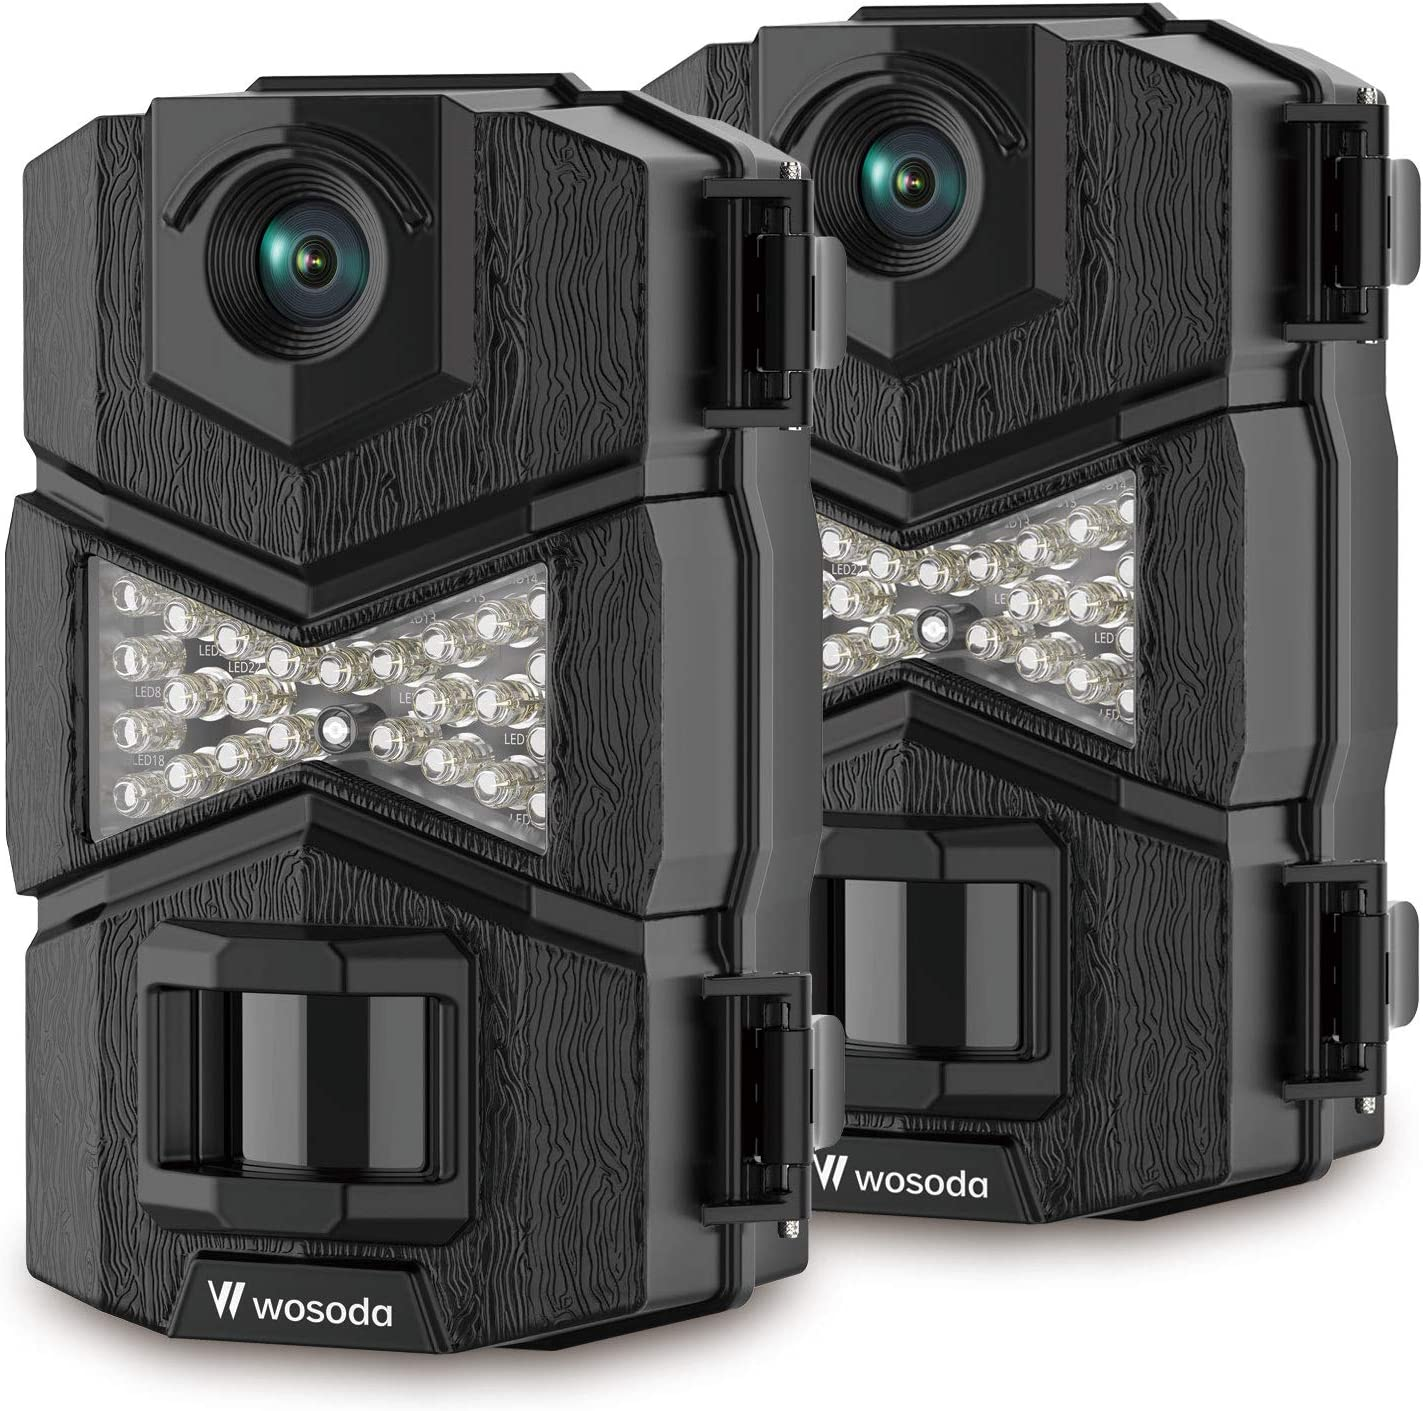 WOSODA 16MP 1080P Trail Camera, with Upgraded 850nm IR LEDs Night Vision 260ft Wildlife Camera, Game Camera for Home Security Wildlife Monitoring/Hunting (2Black)